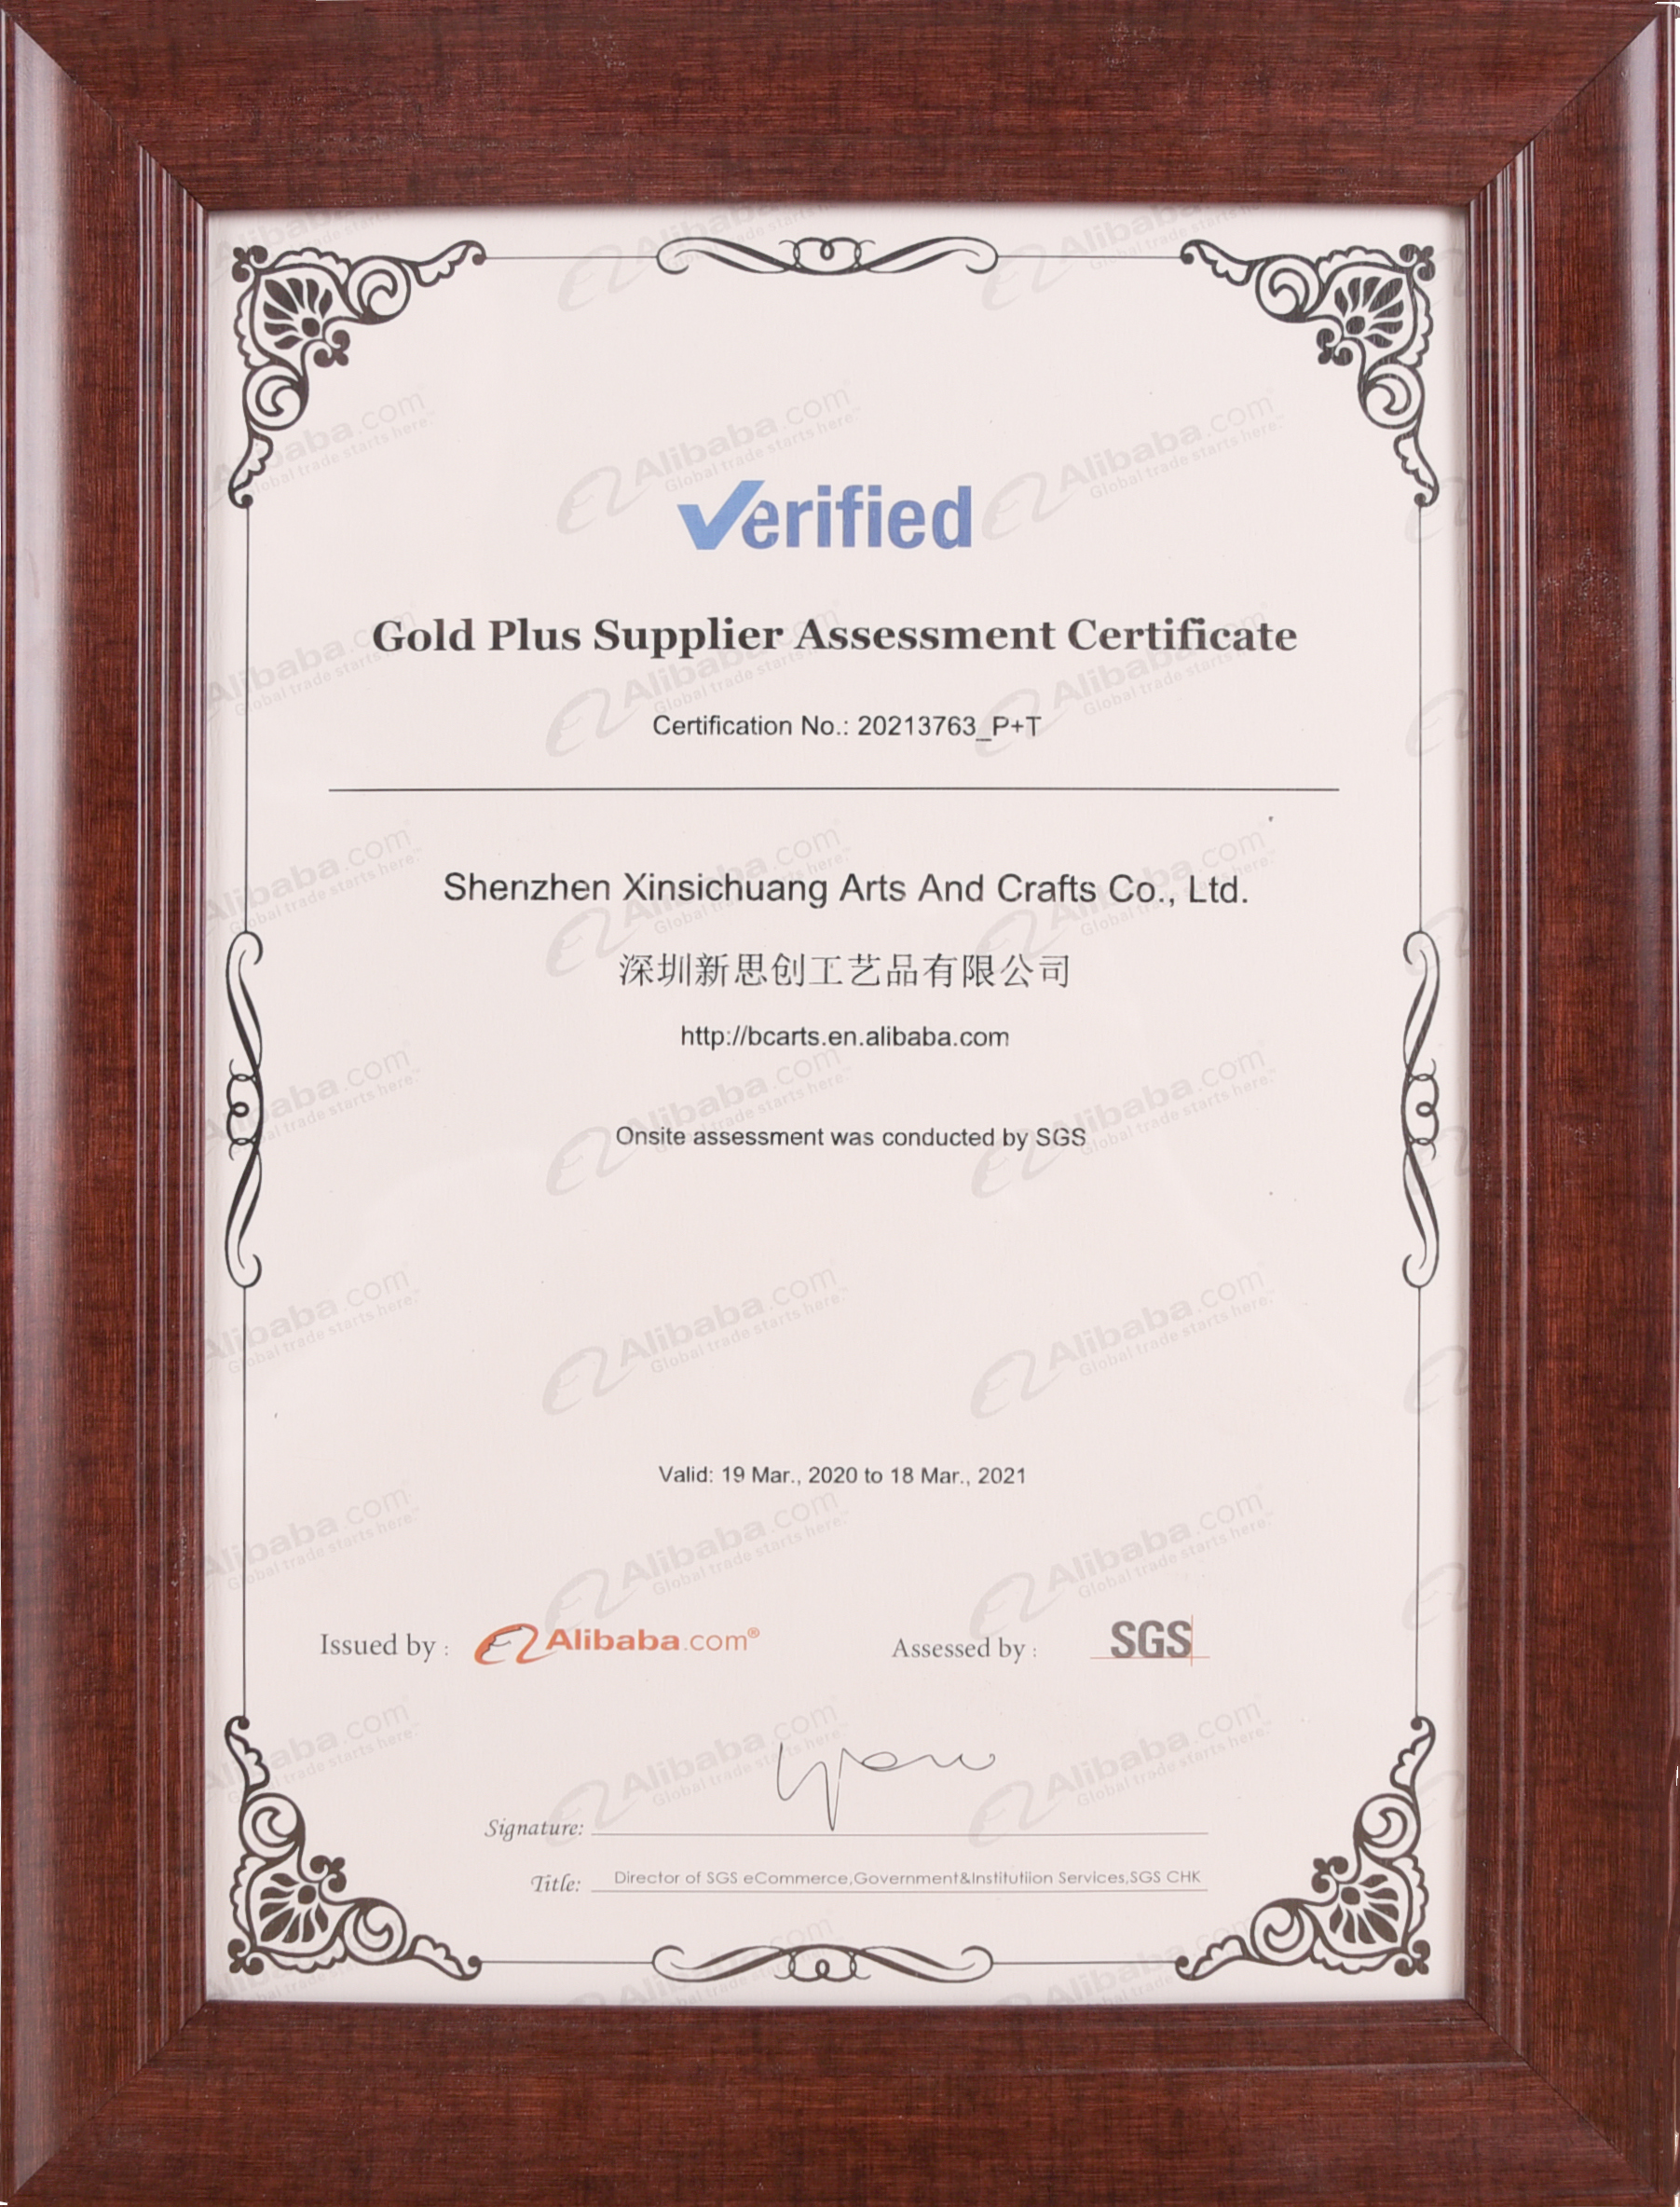 Gold Plus Supplier Assessment Certificate